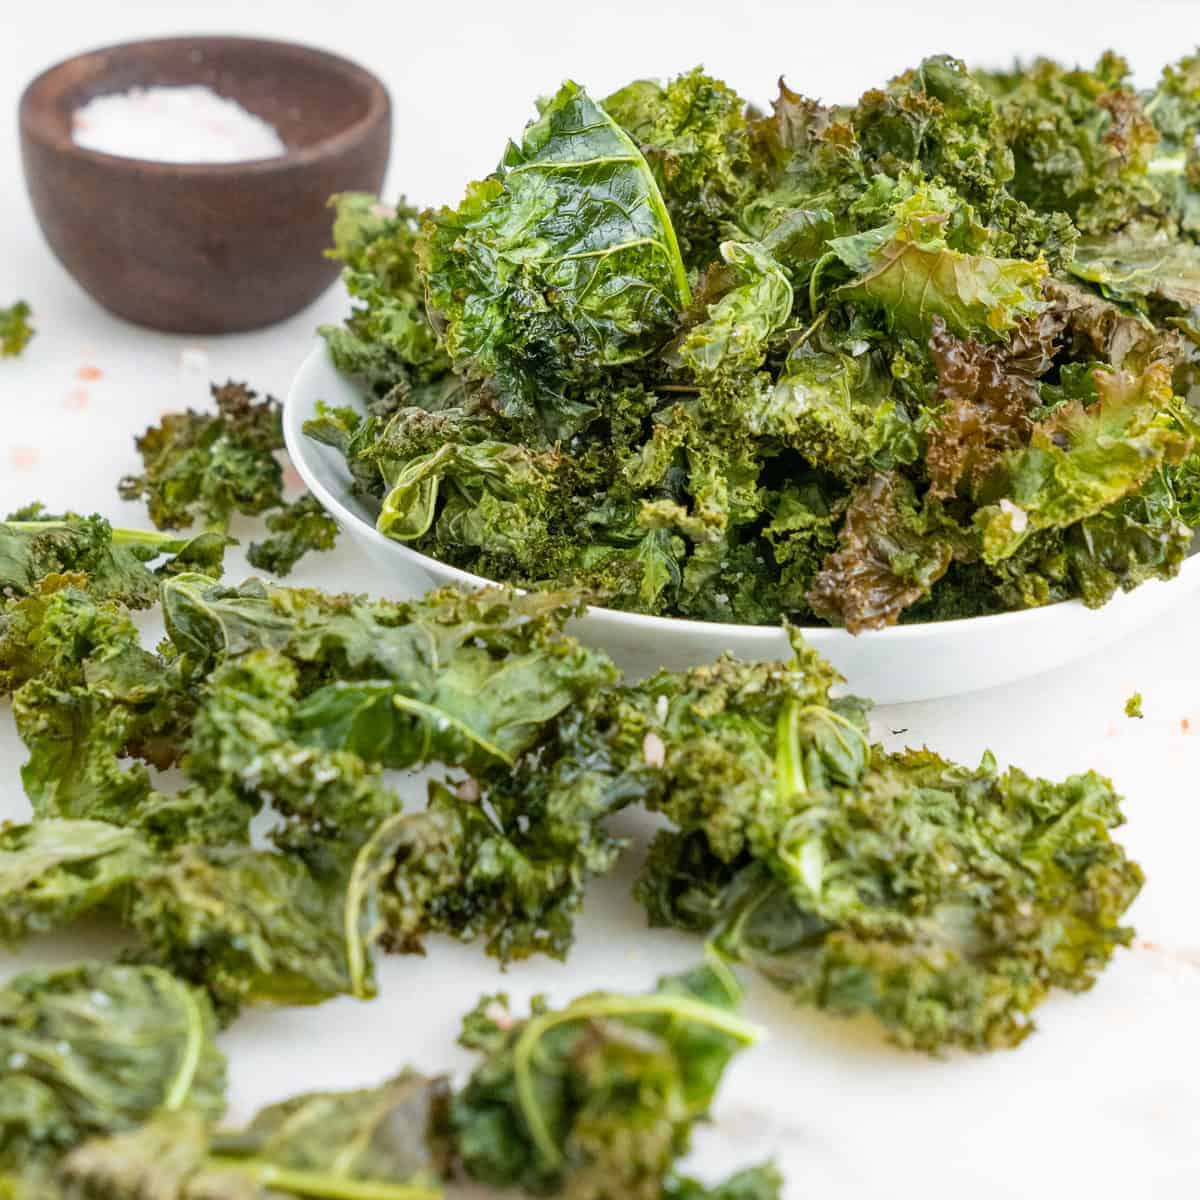 Crispy Baked Kale Chips spread out on a white surface and in a bowl with a bowl of salt in the background